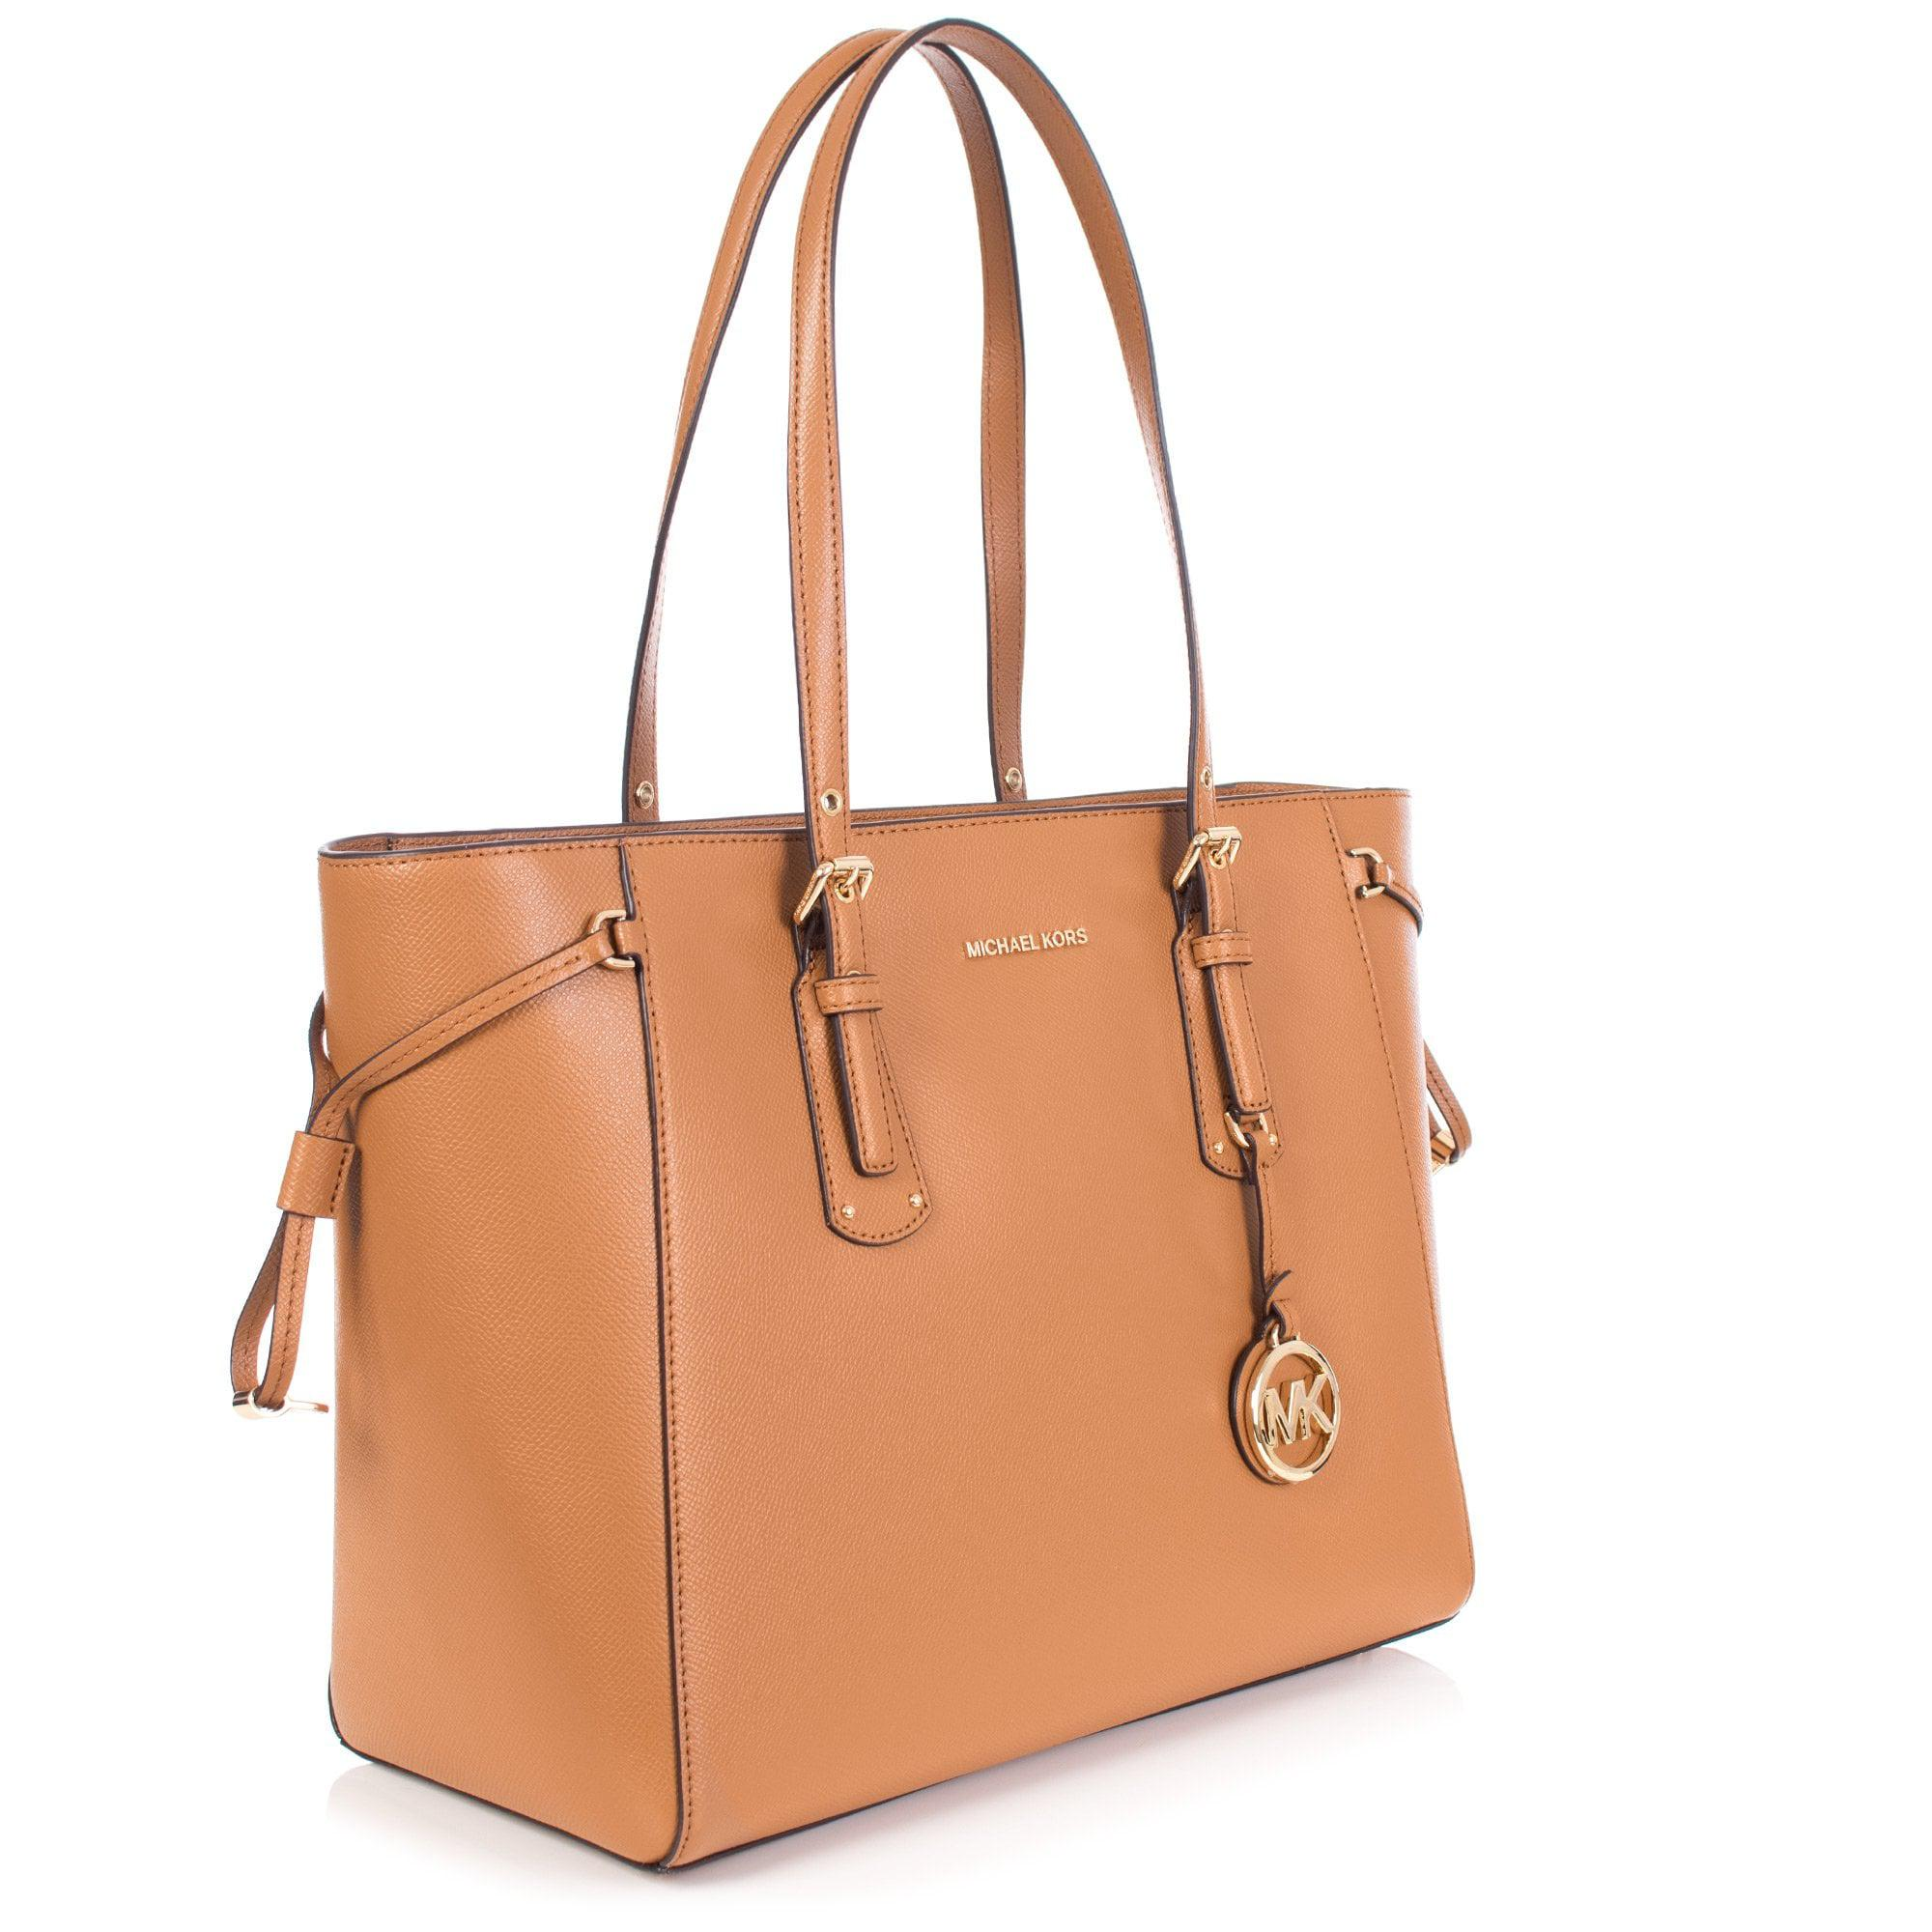 c818001744a94 Michael Kors Voyager Leather Shopper in Brown - Lyst